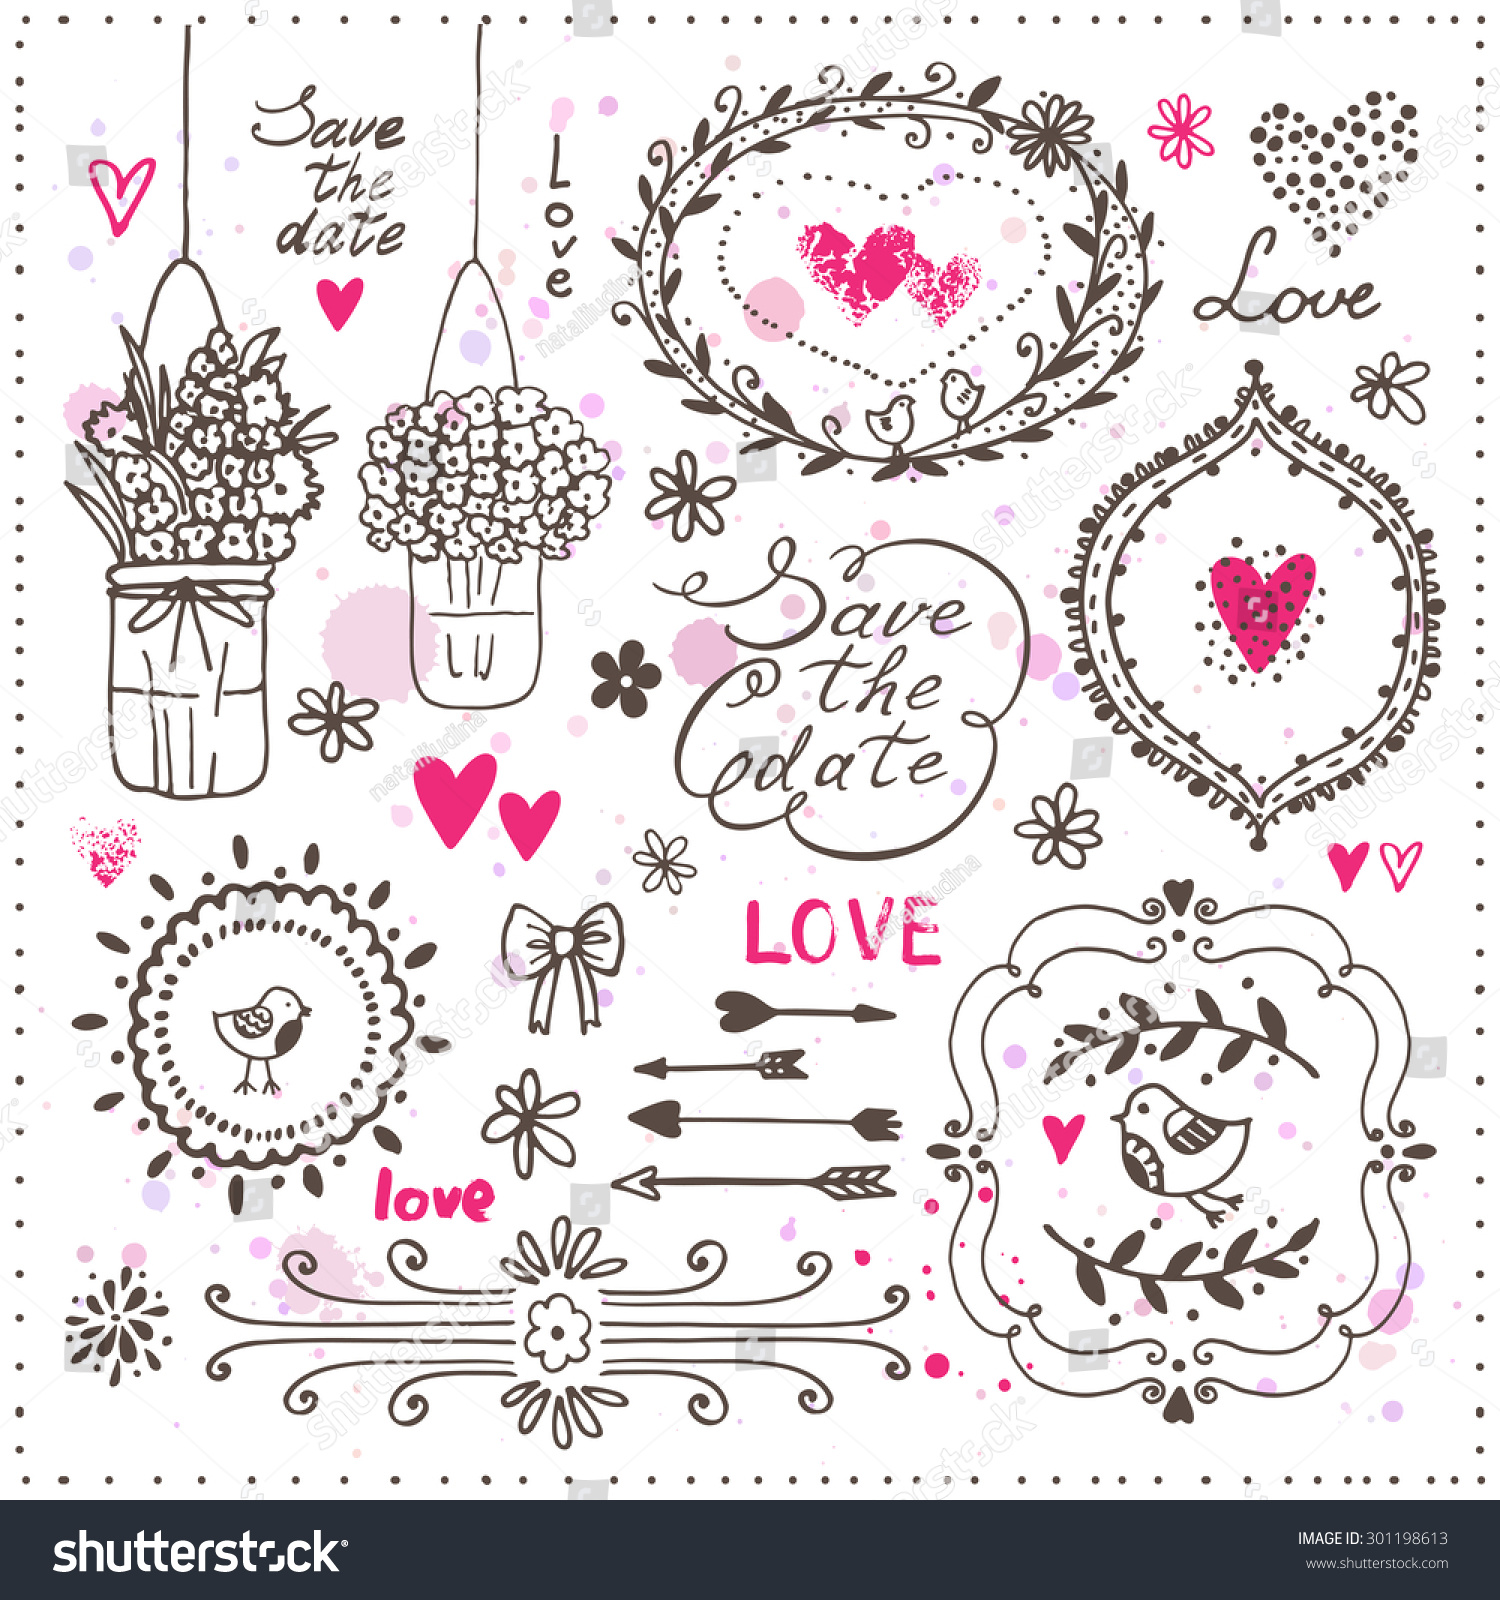 Set hand drawn design elements wedding stock vector hd royalty free set of hand drawn design elements for wedding decoration vector illustration decorative frames junglespirit Gallery